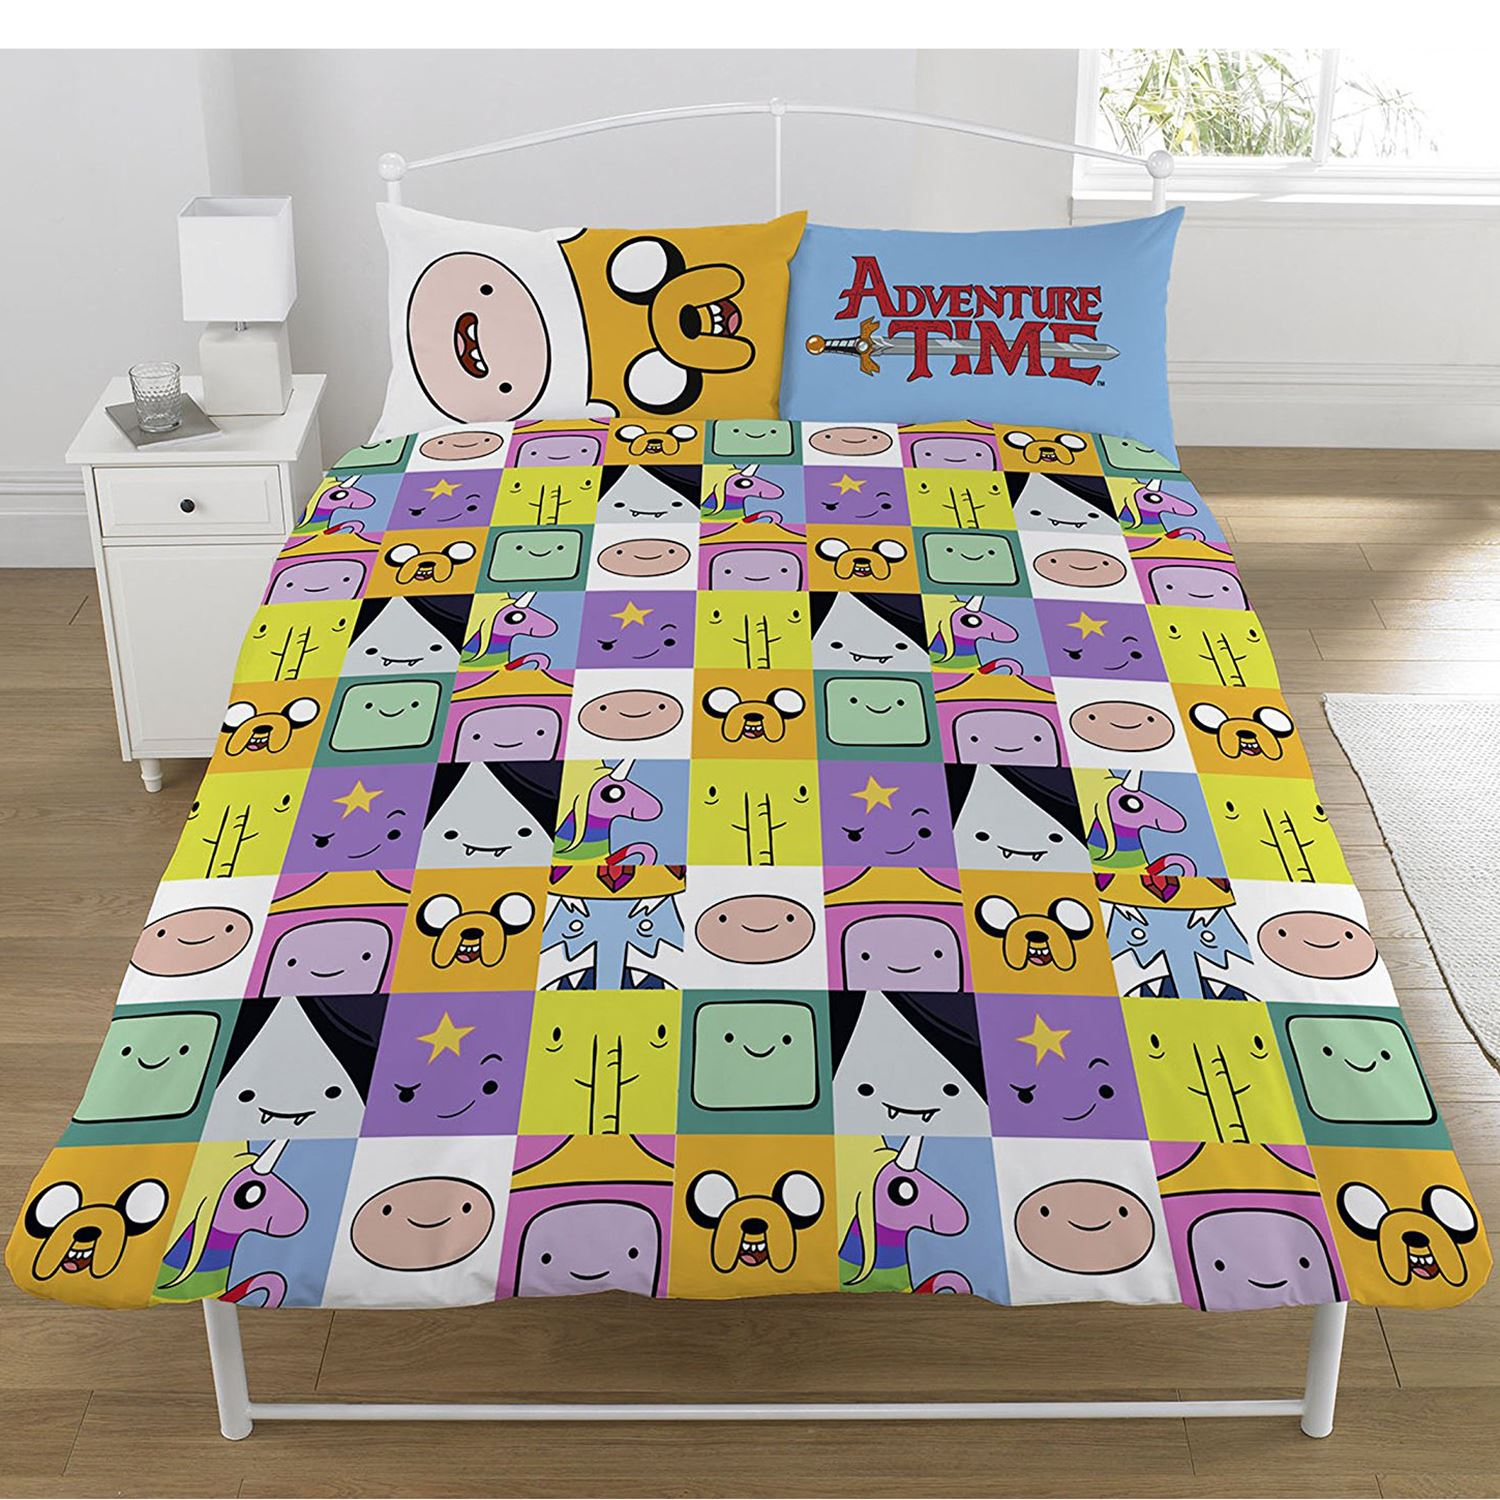 Totoro Bettwäsche Details About Adventure Time Duvet Cover Set Reversible Kids Boys Bedding Single Double